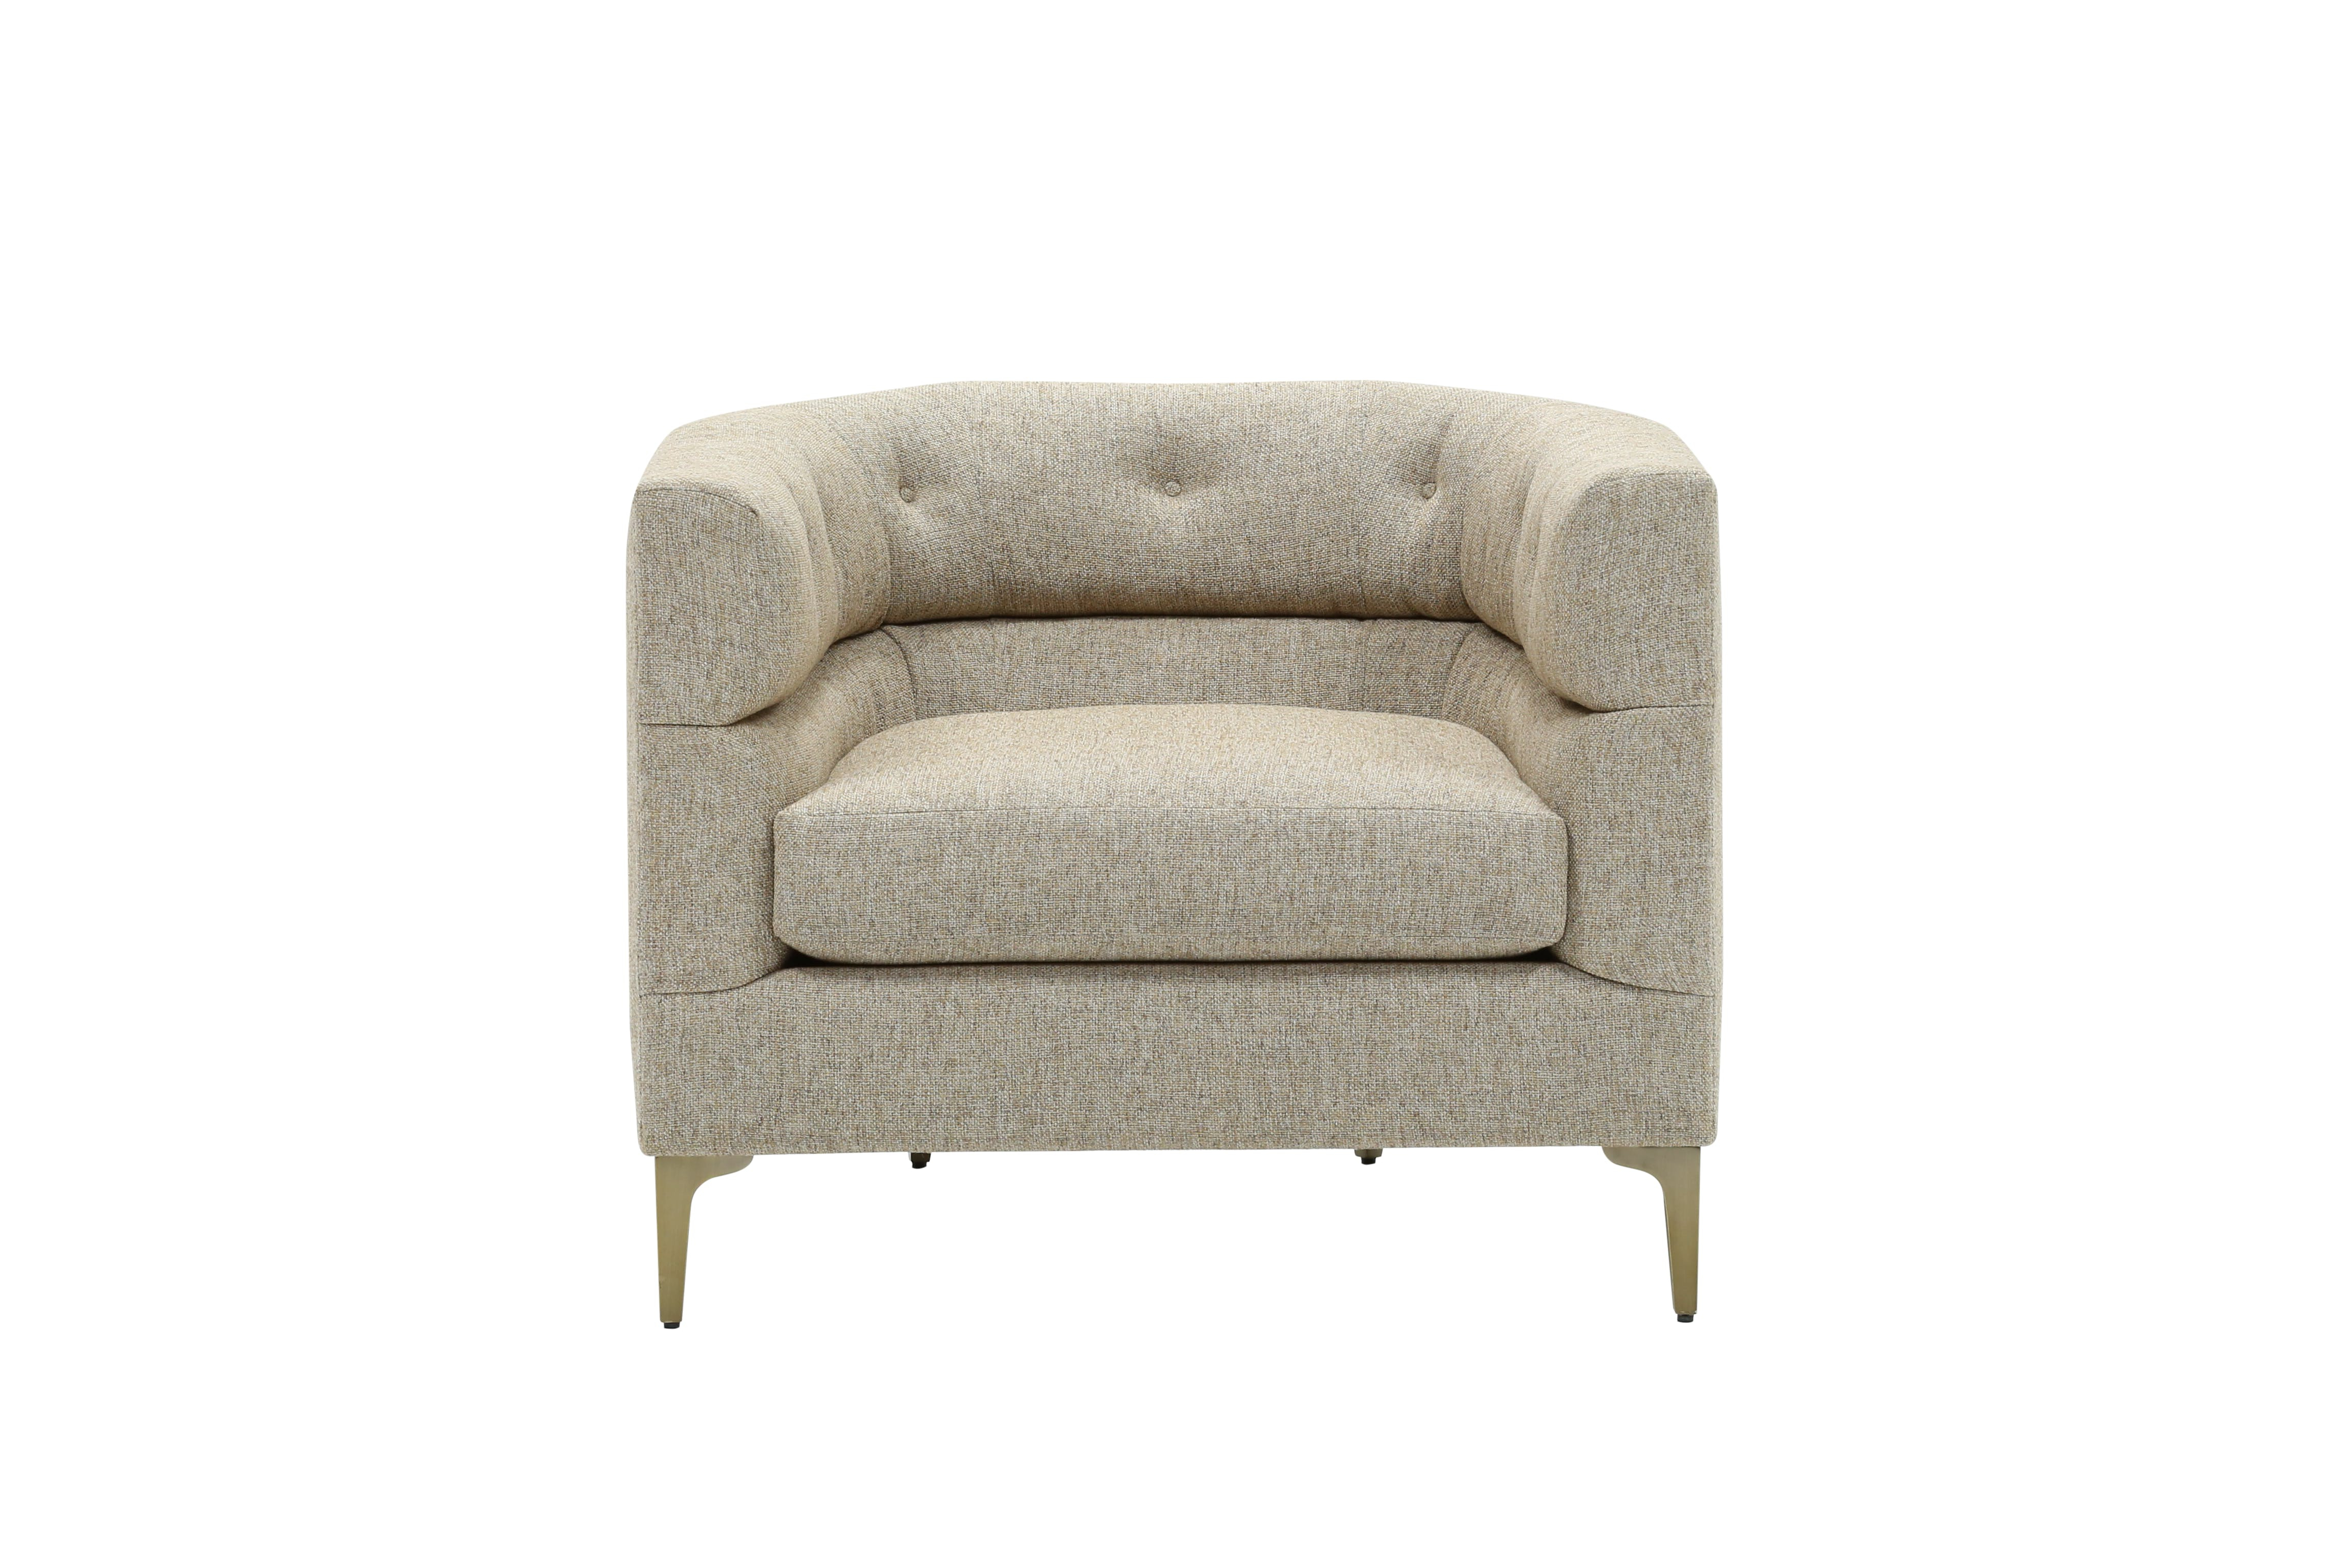 Matteo Arm Sofa Chairs By Nate Berkus And Jeremiah Brent Within Favorite Nate Berkus Just Launched A Home Collection With Hubby Jeremiah (Gallery 2 of 20)